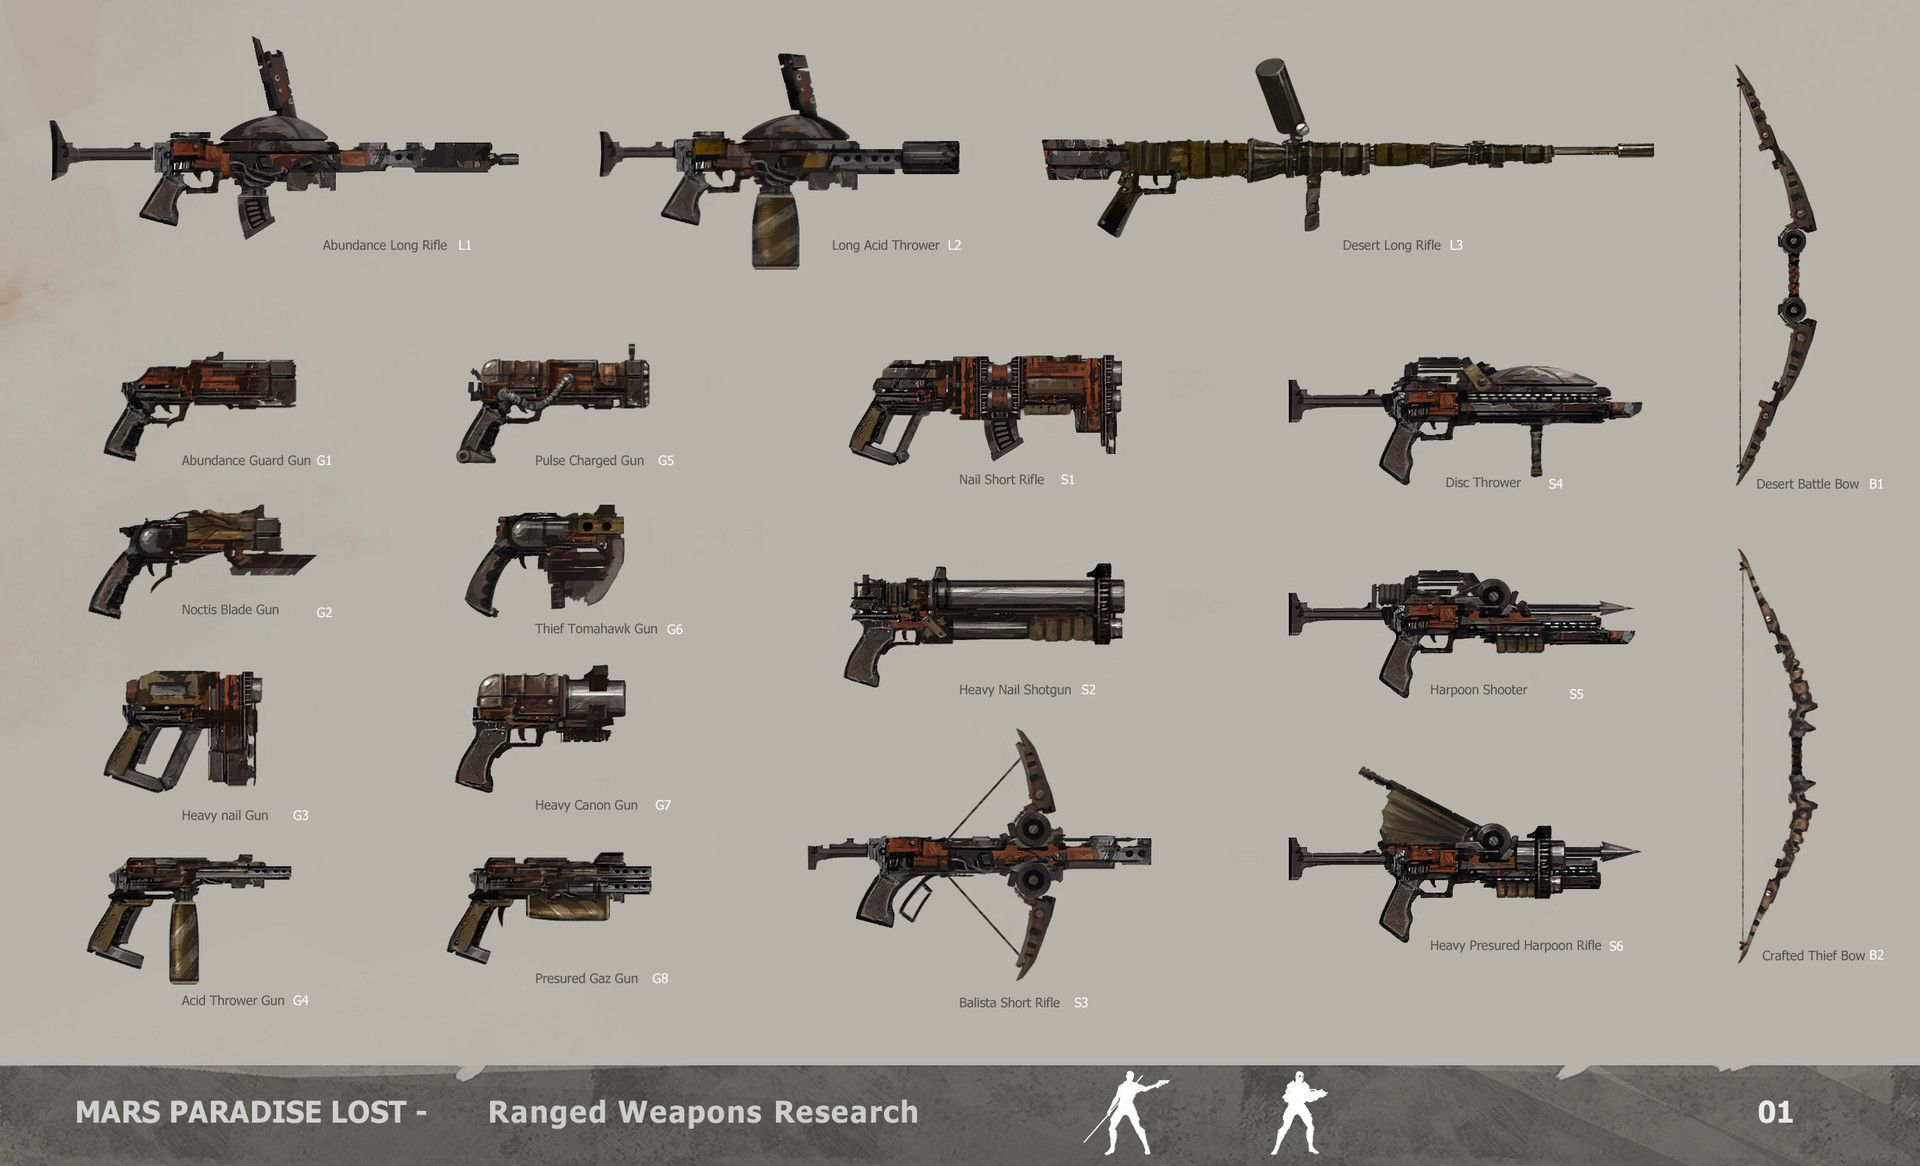 ArtStation - The Technomancer - Weapons Designs, Alexandre Chaudret on anime weapons designs, homemade weapons furniture, improvised weapons designs, homemade weapons systems, indian weapons designs, funny weapons designs,